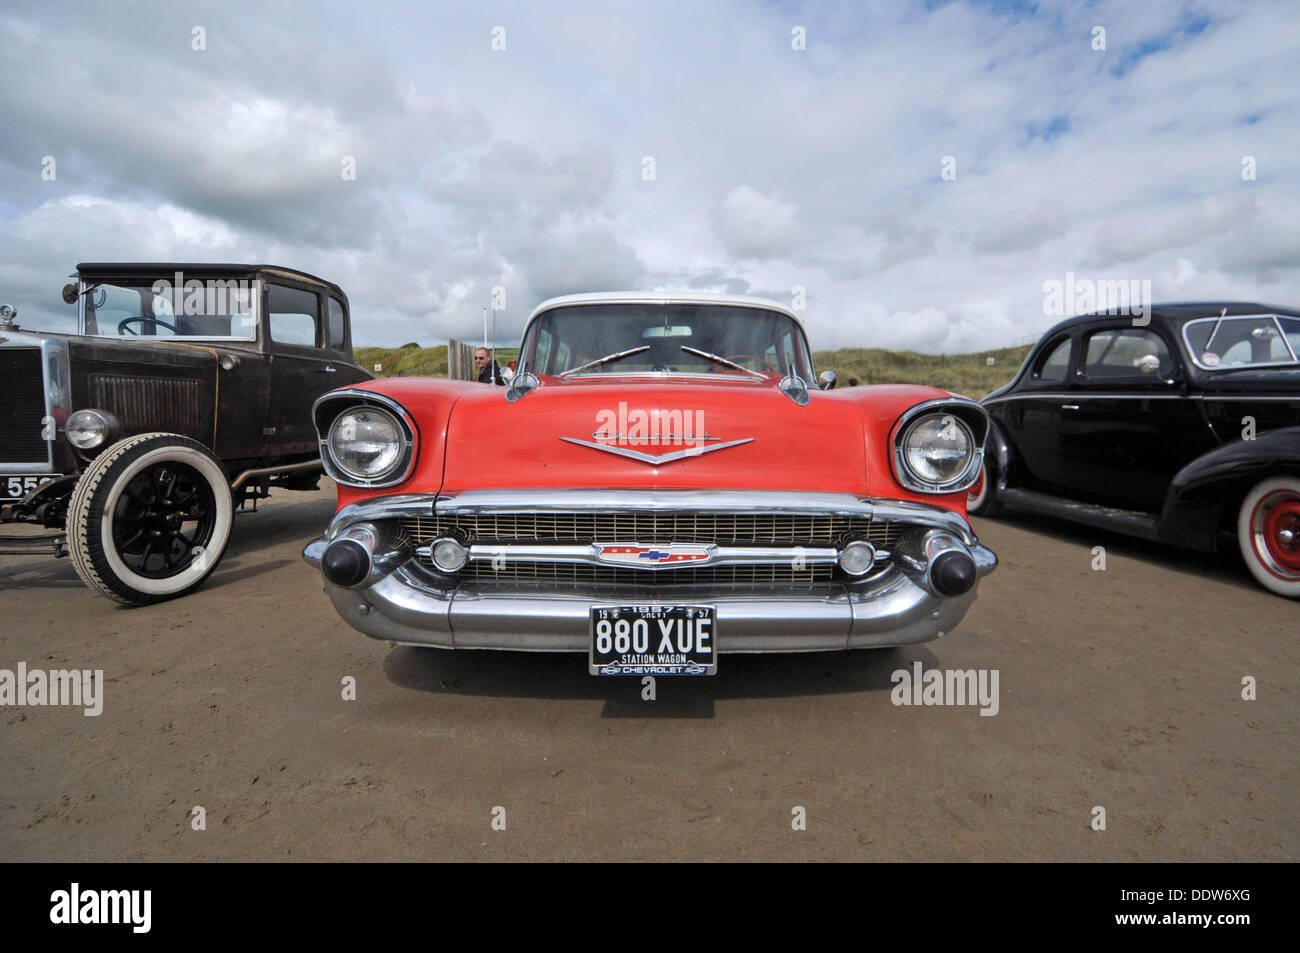 Exelent Classic American Cars Ebay Uk Composition - Classic Cars ...